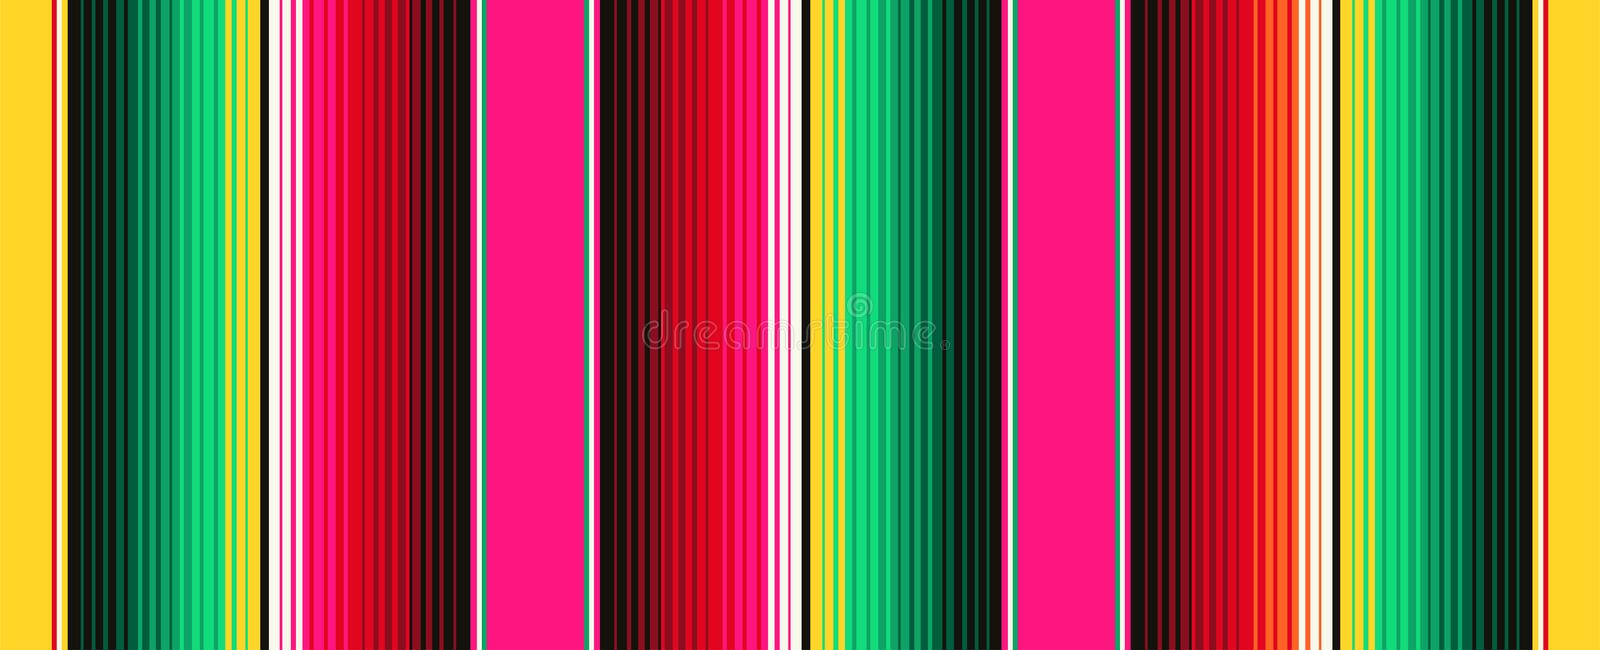 La couverture mexicaine barre le mod?le sans couture de vecteur Fond pour Cinco de Mayo Party Decor ou le restaurant mexicain de  illustration stock